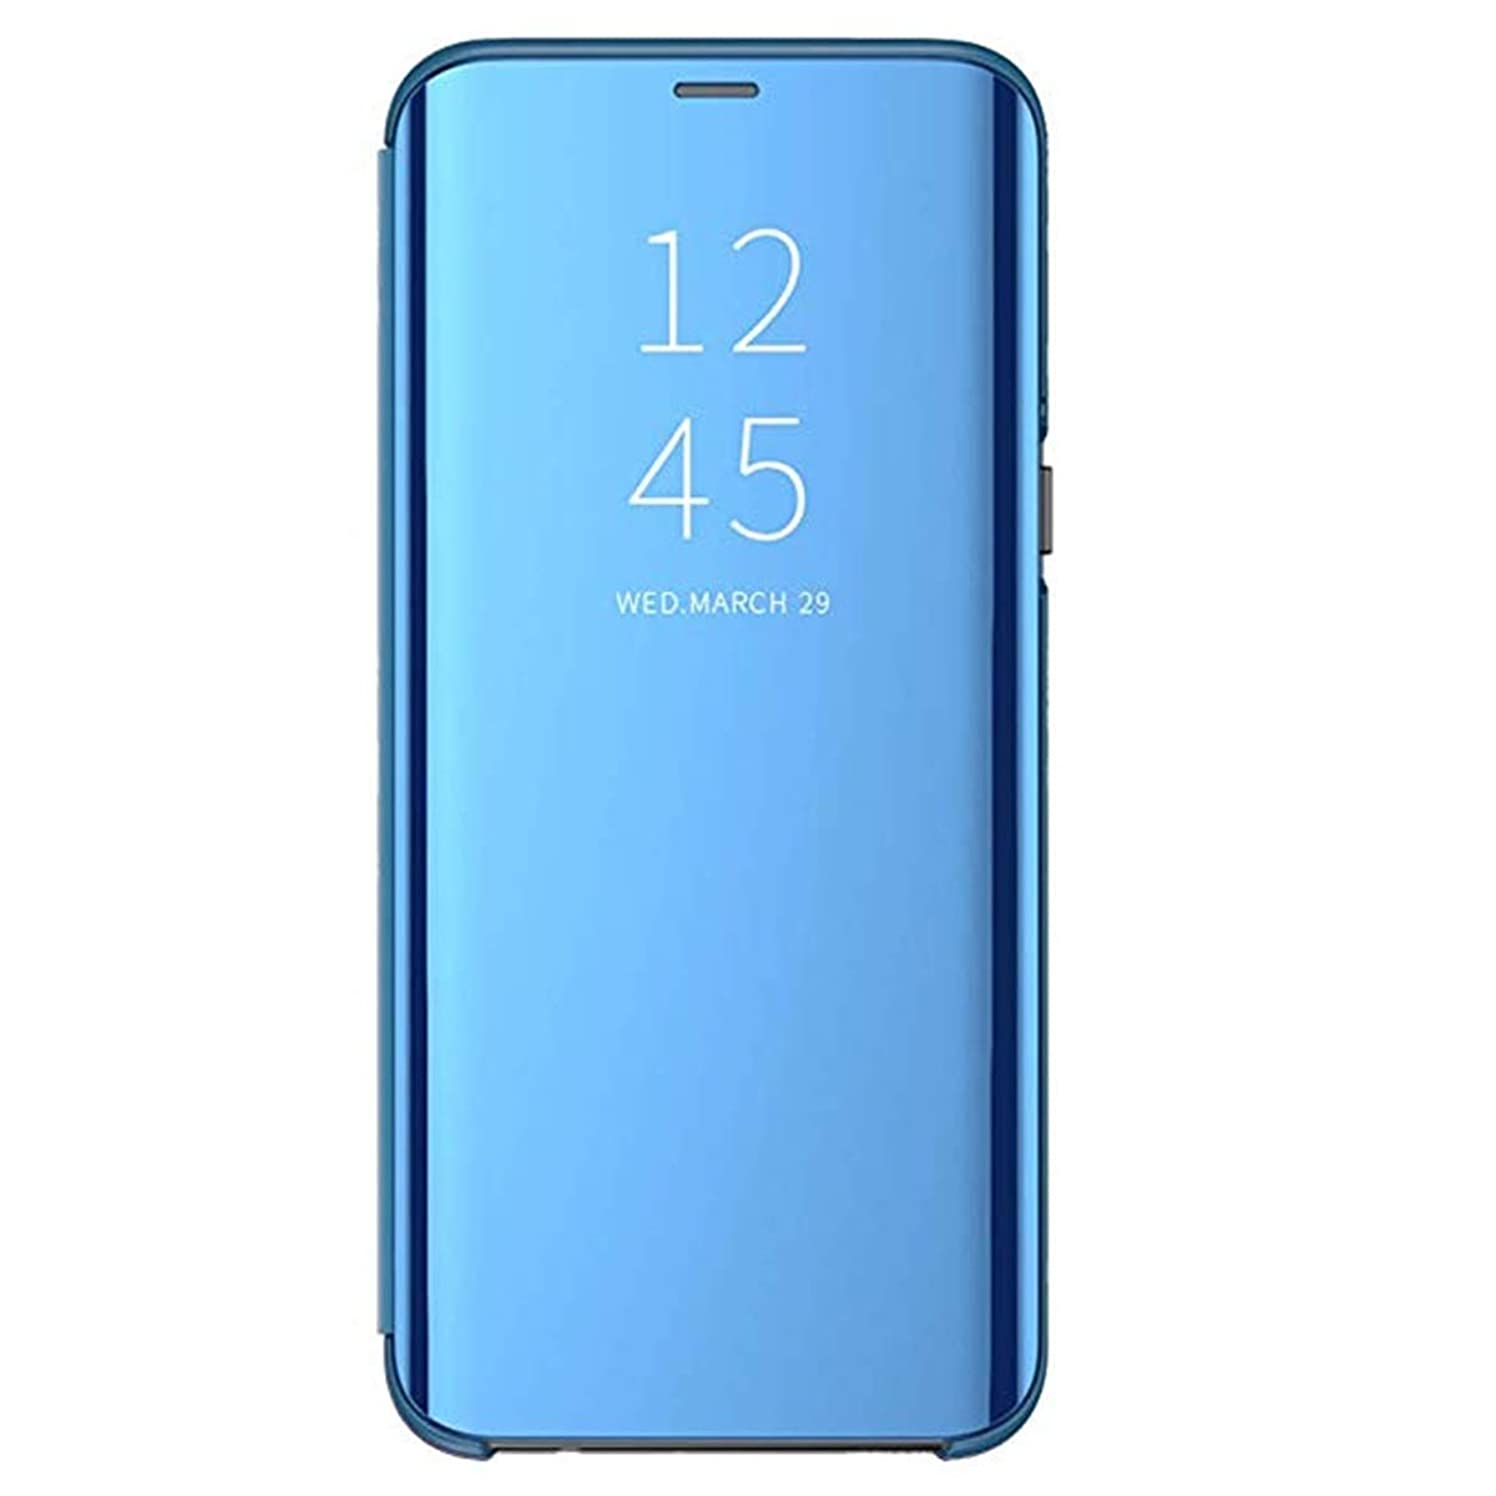 Xiaomi Redmi Note 7 Flip Case Mirror Clear View 360° Full Protection Hard PC Slim Shockproof Built in Kickstand Magnetic Cover for Smartphone Redmi Note 7 Pro 6.3